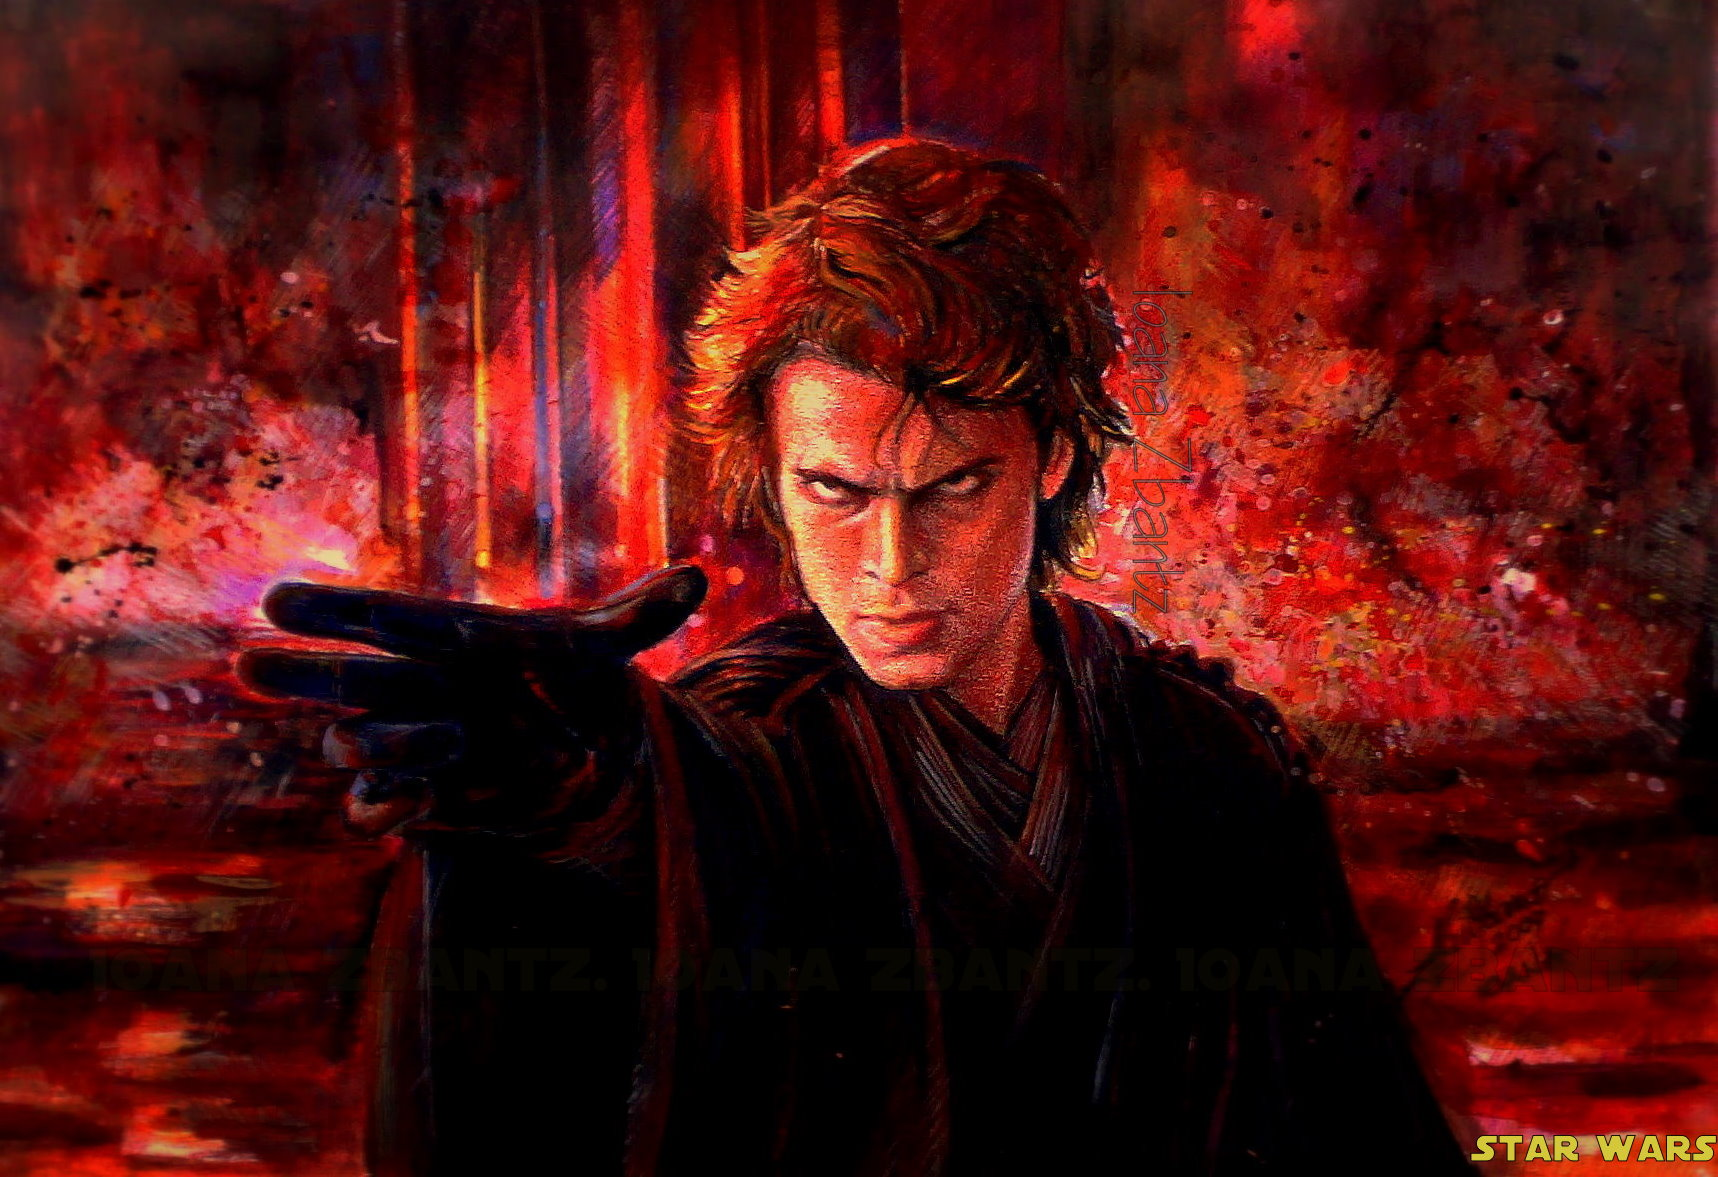 Dark Anakin on Mustafar